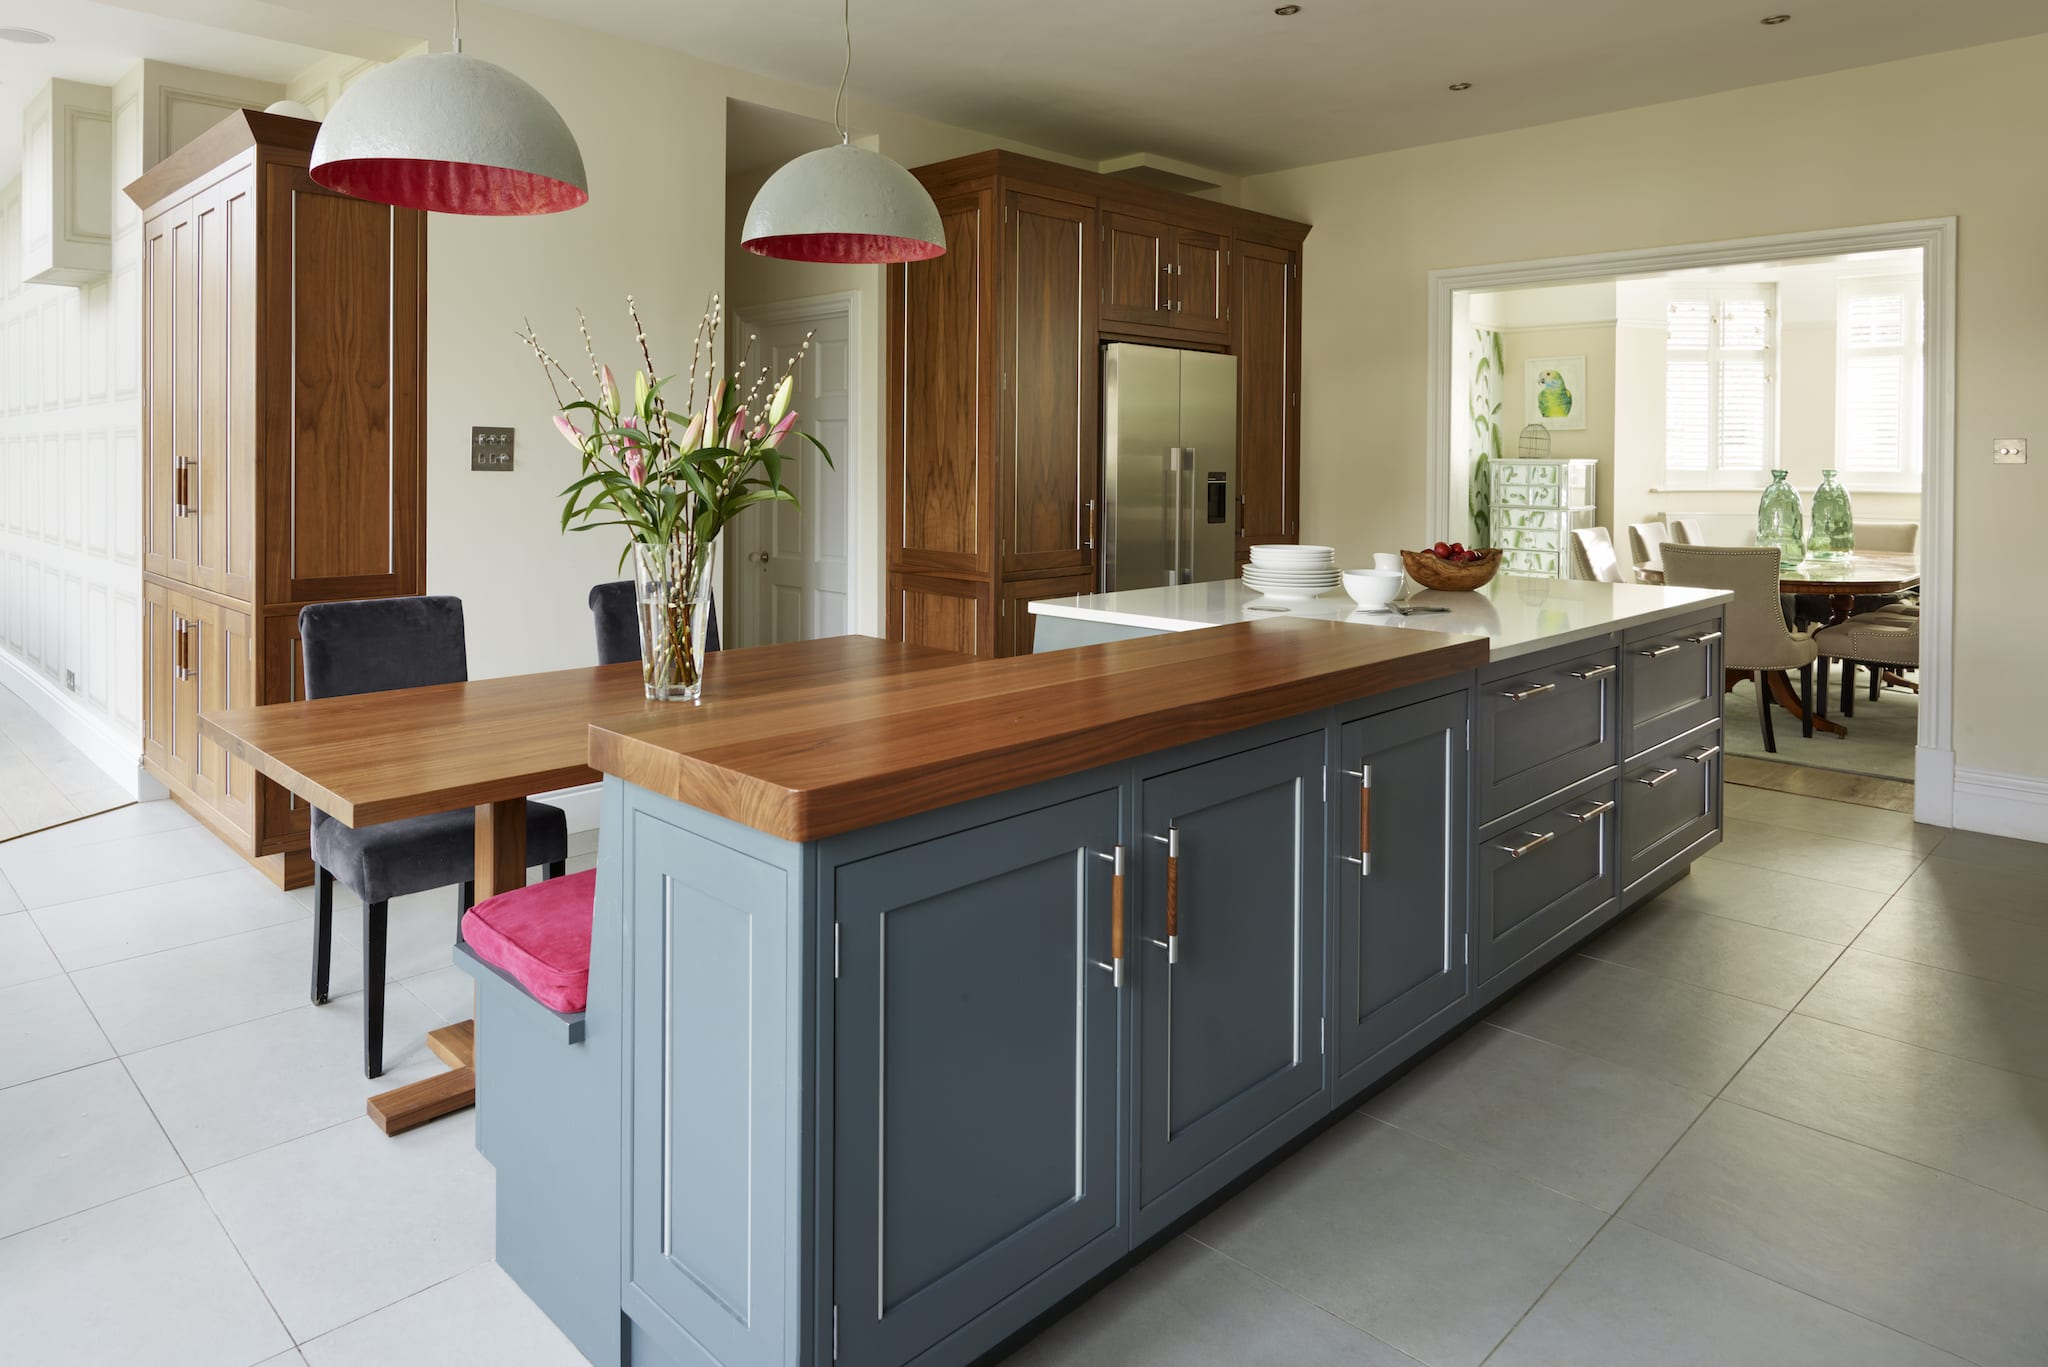 A Modern Classic Kitchen Case Study Davonport Kitchens